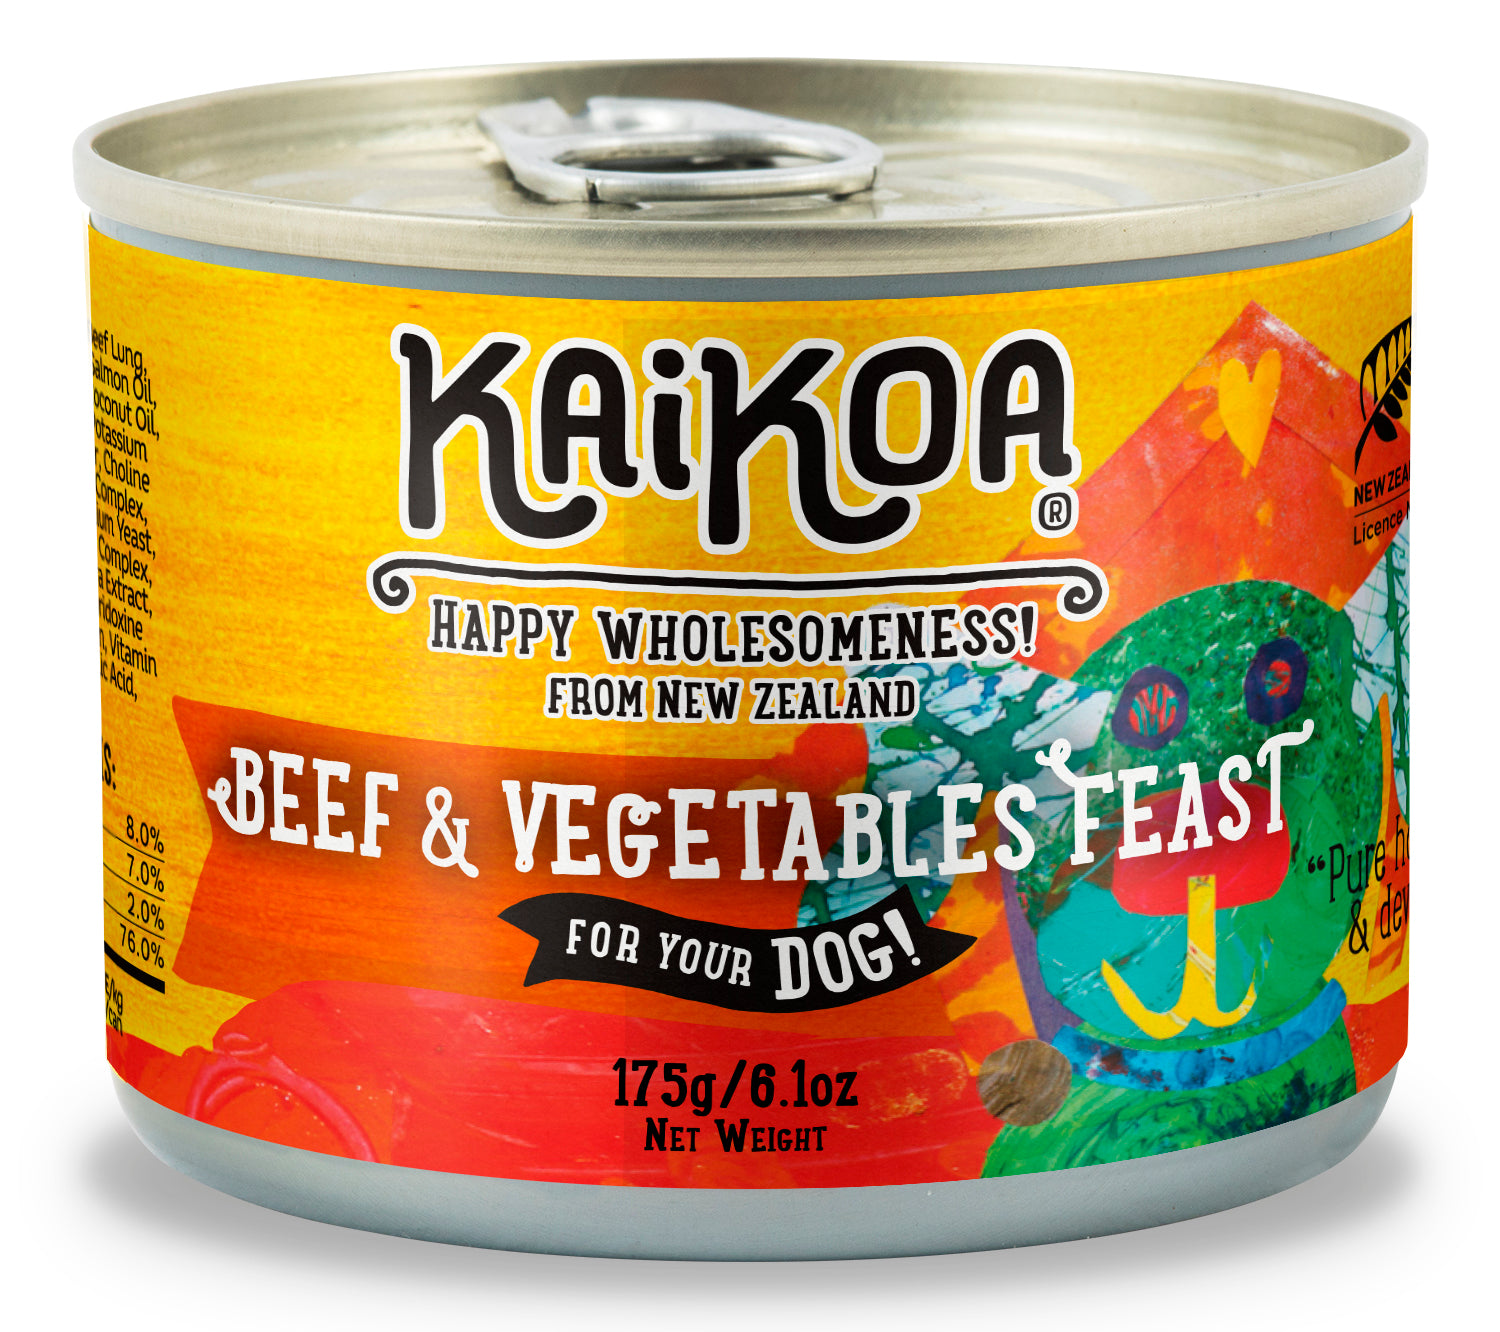 Beef and Vegetable Feast For Your Dog